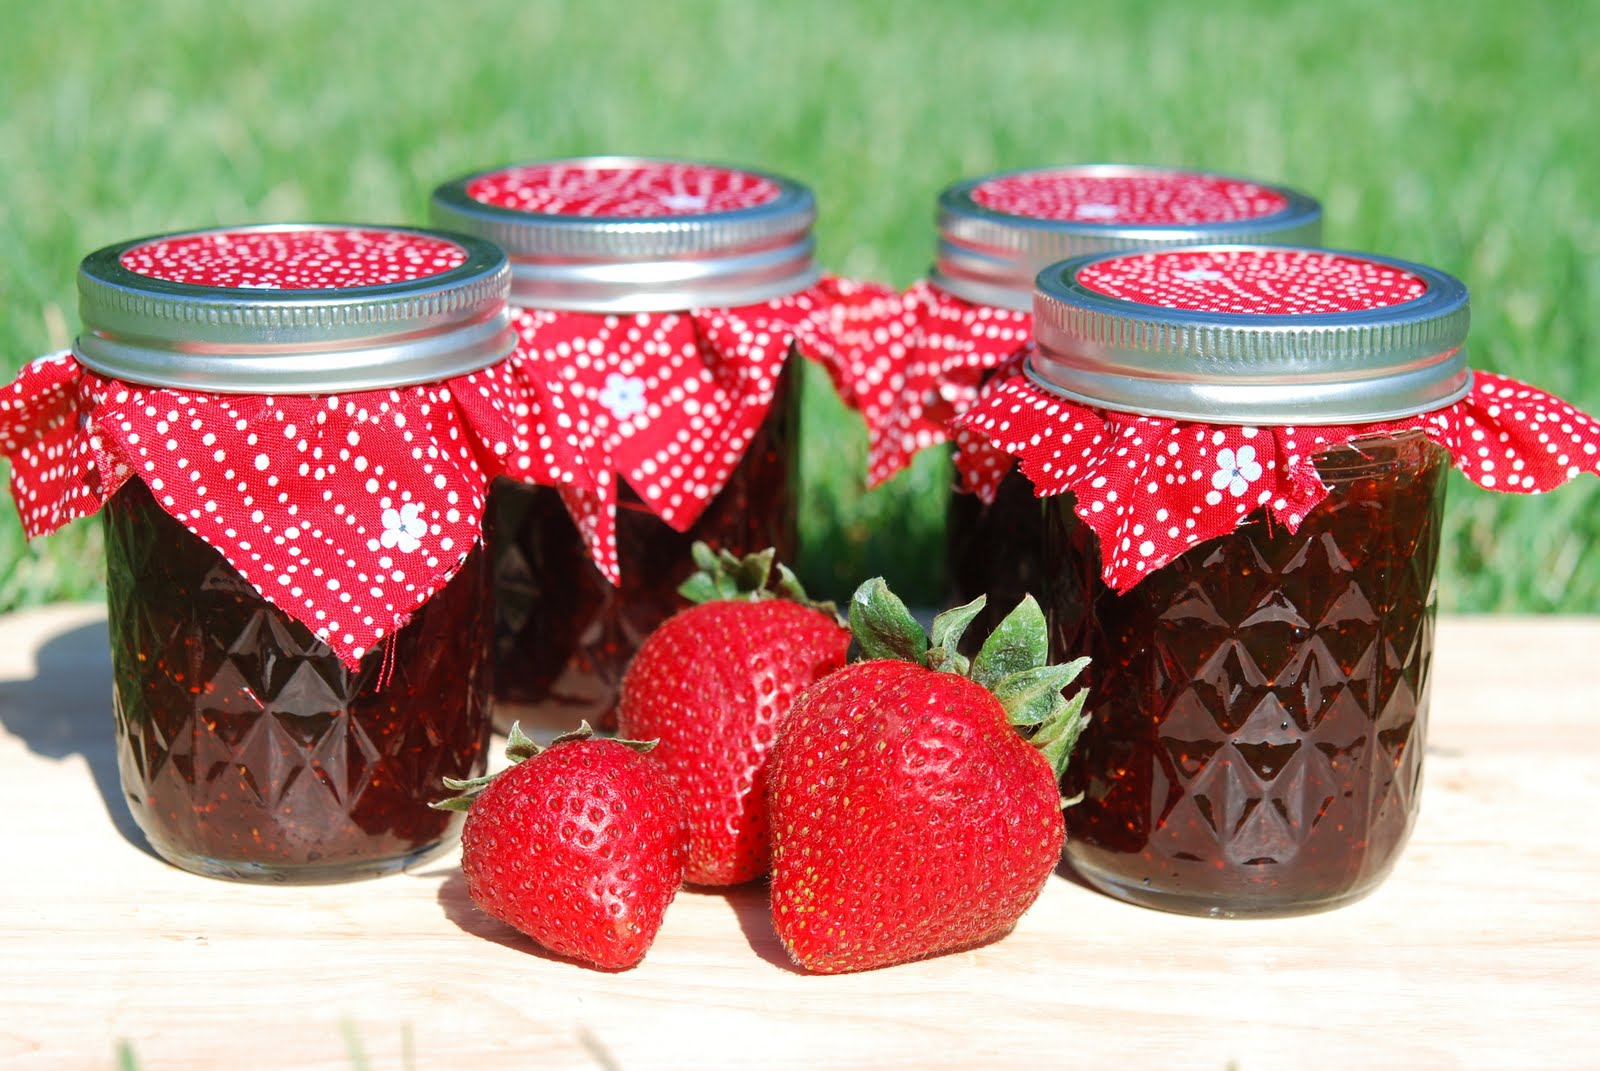 Recipes tips and techniques on jam making my easy menu - Jam without boiling easy made flavorful ...